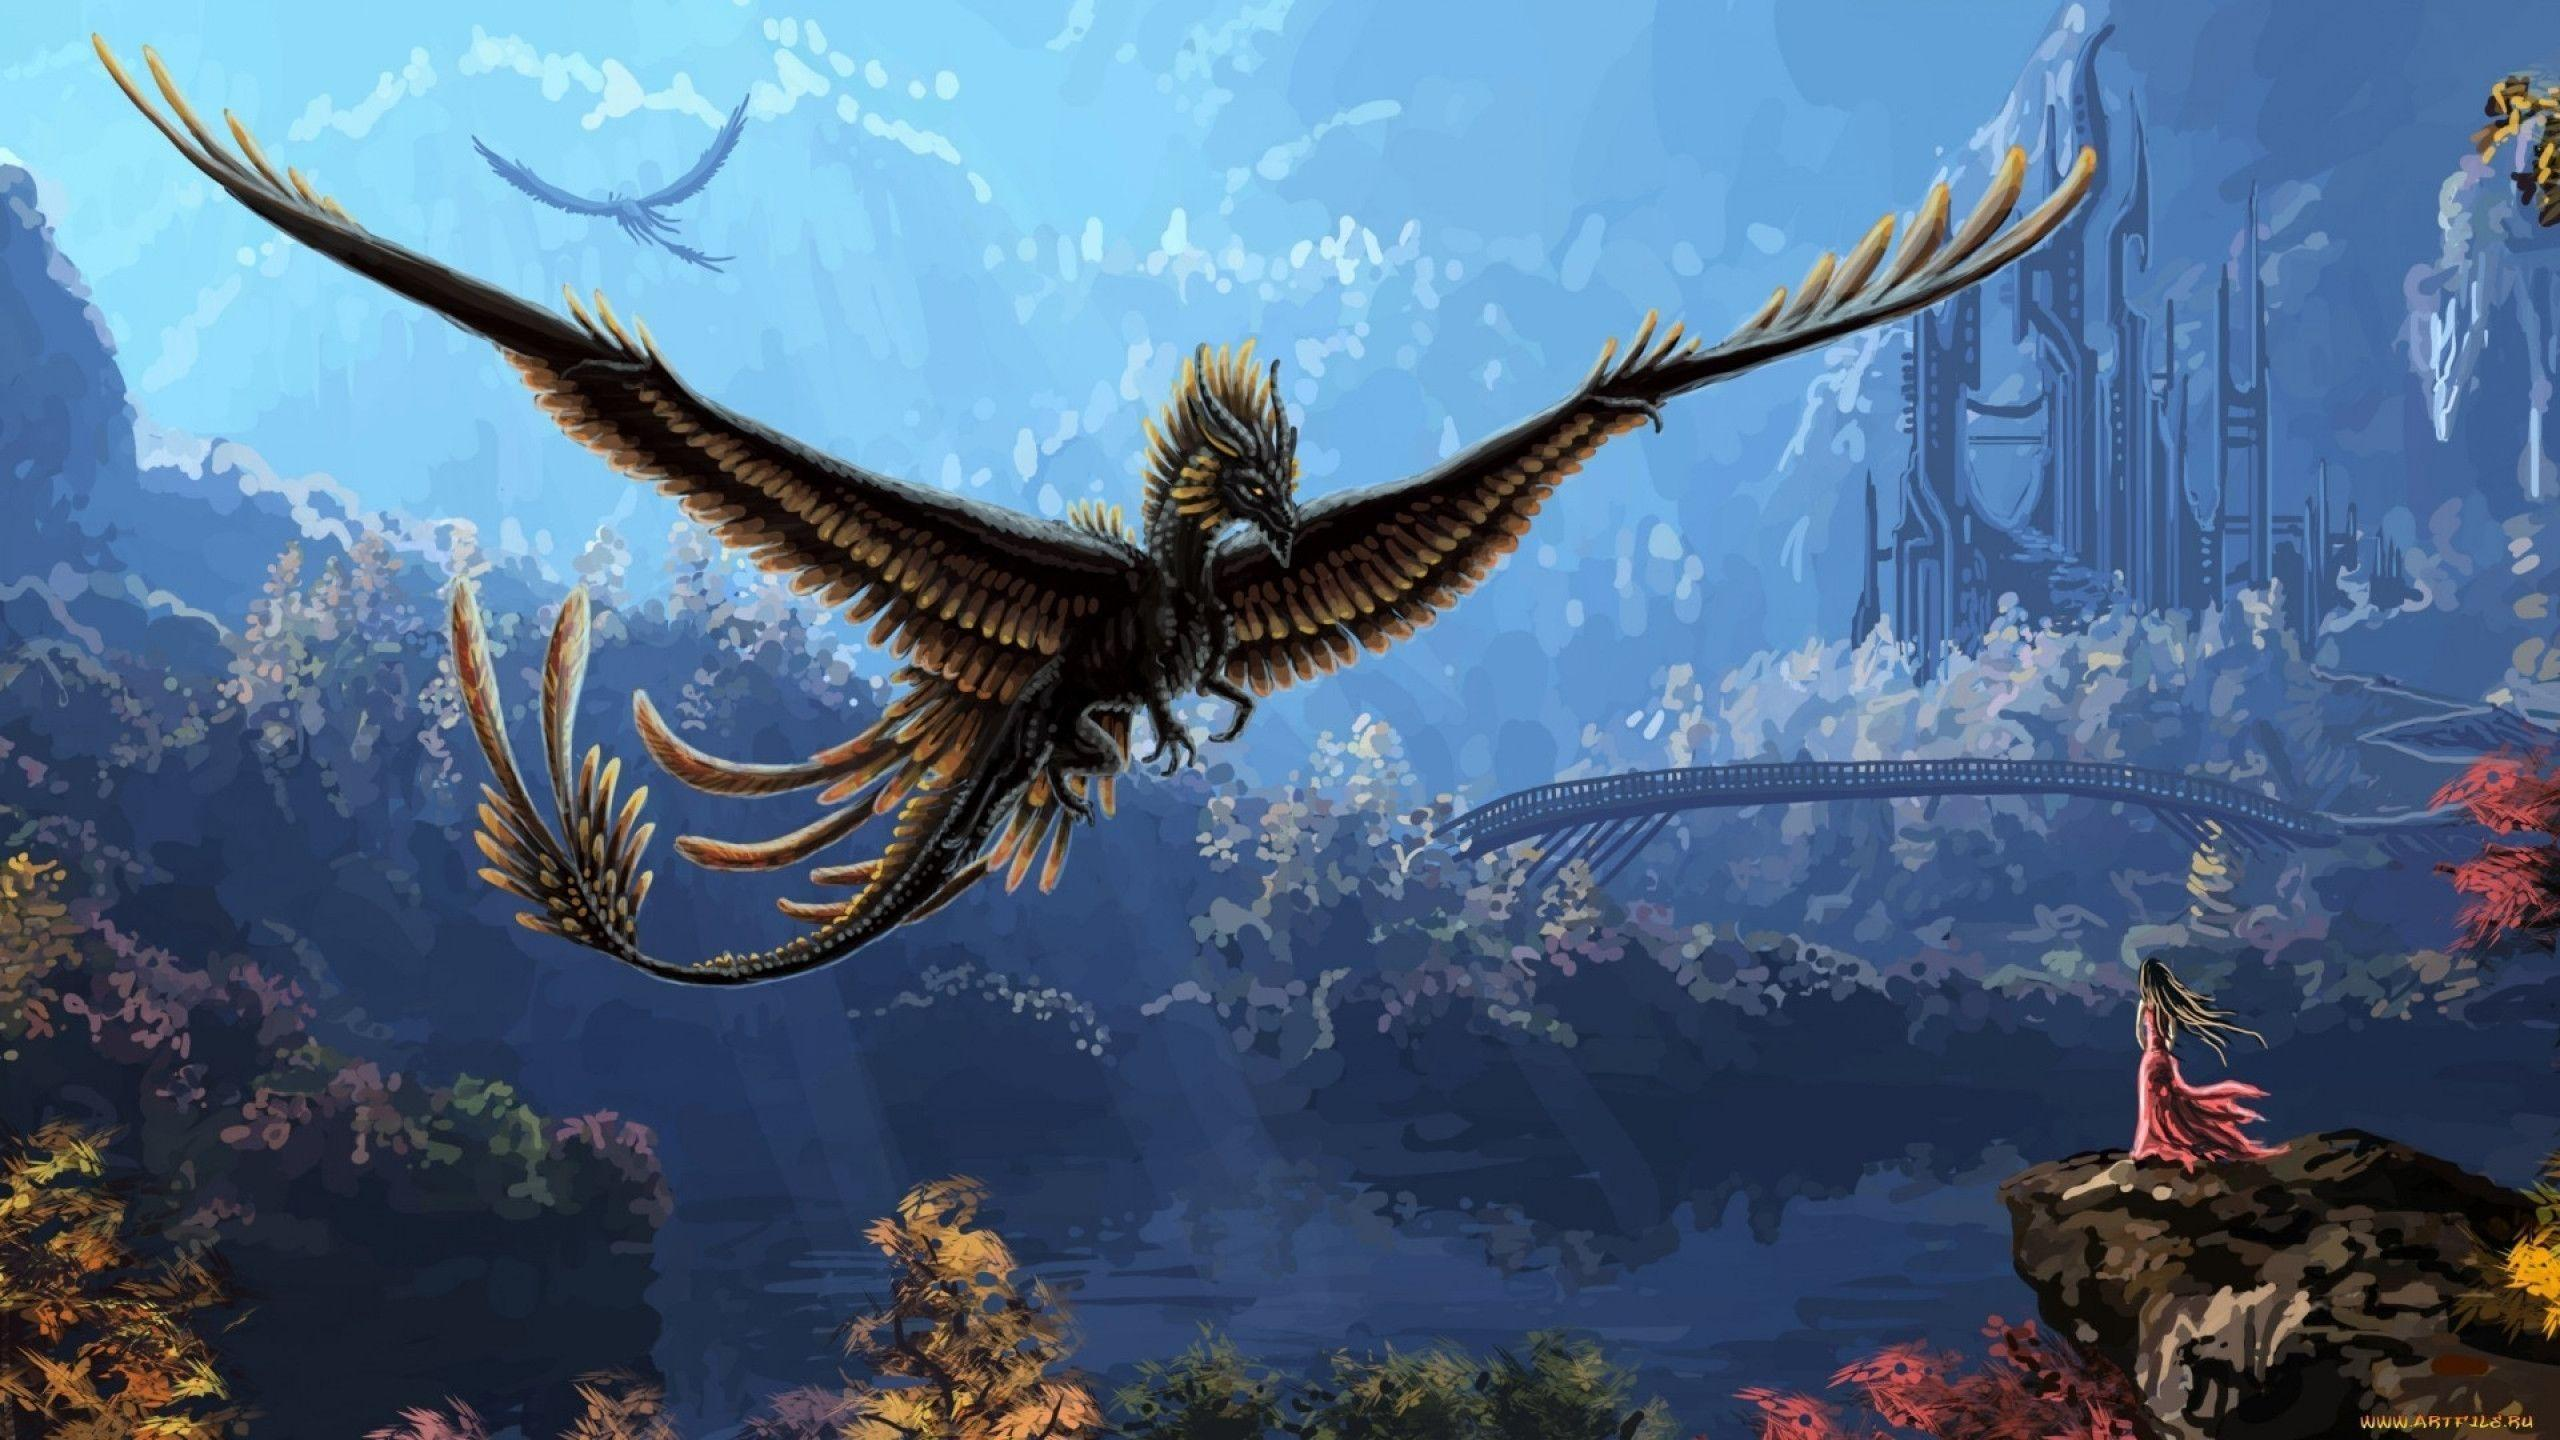 Flying Dragon Wallpapers 2560x1440